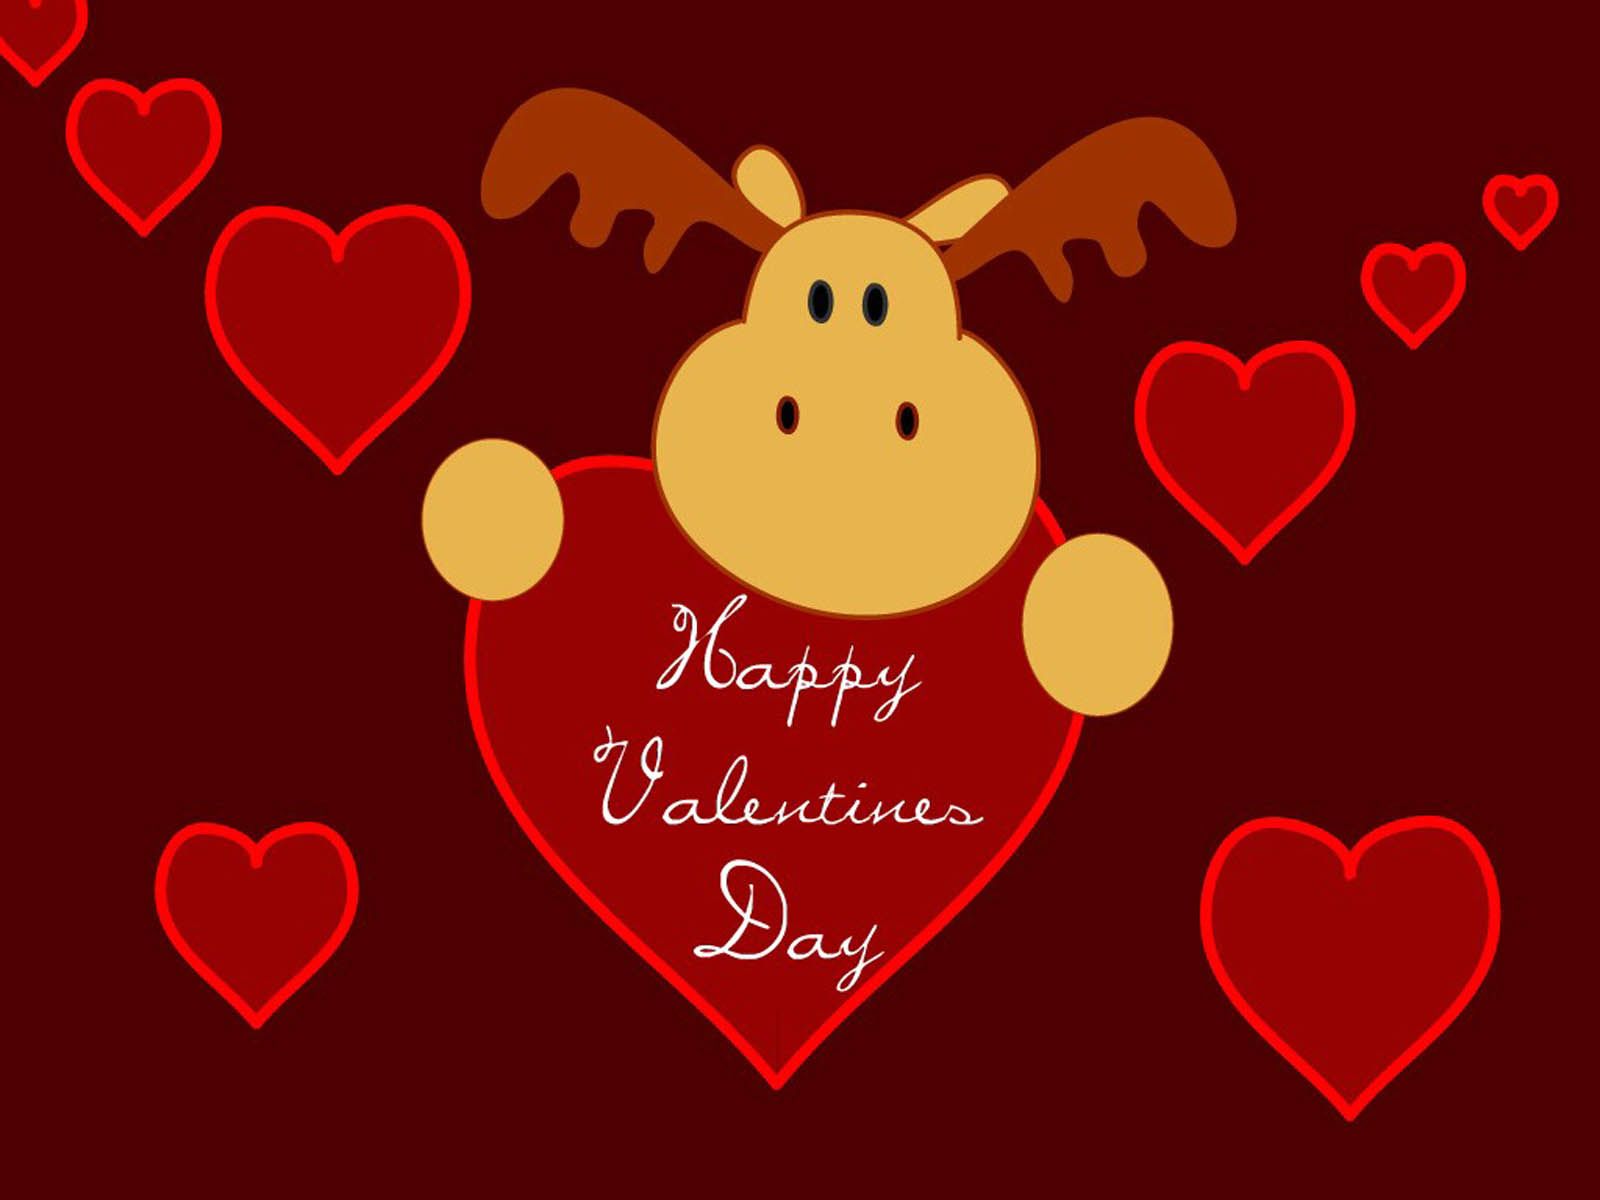 Day Backgrounds ValentinesDay Wallpapers Valentines Day Desktop 1600x1200